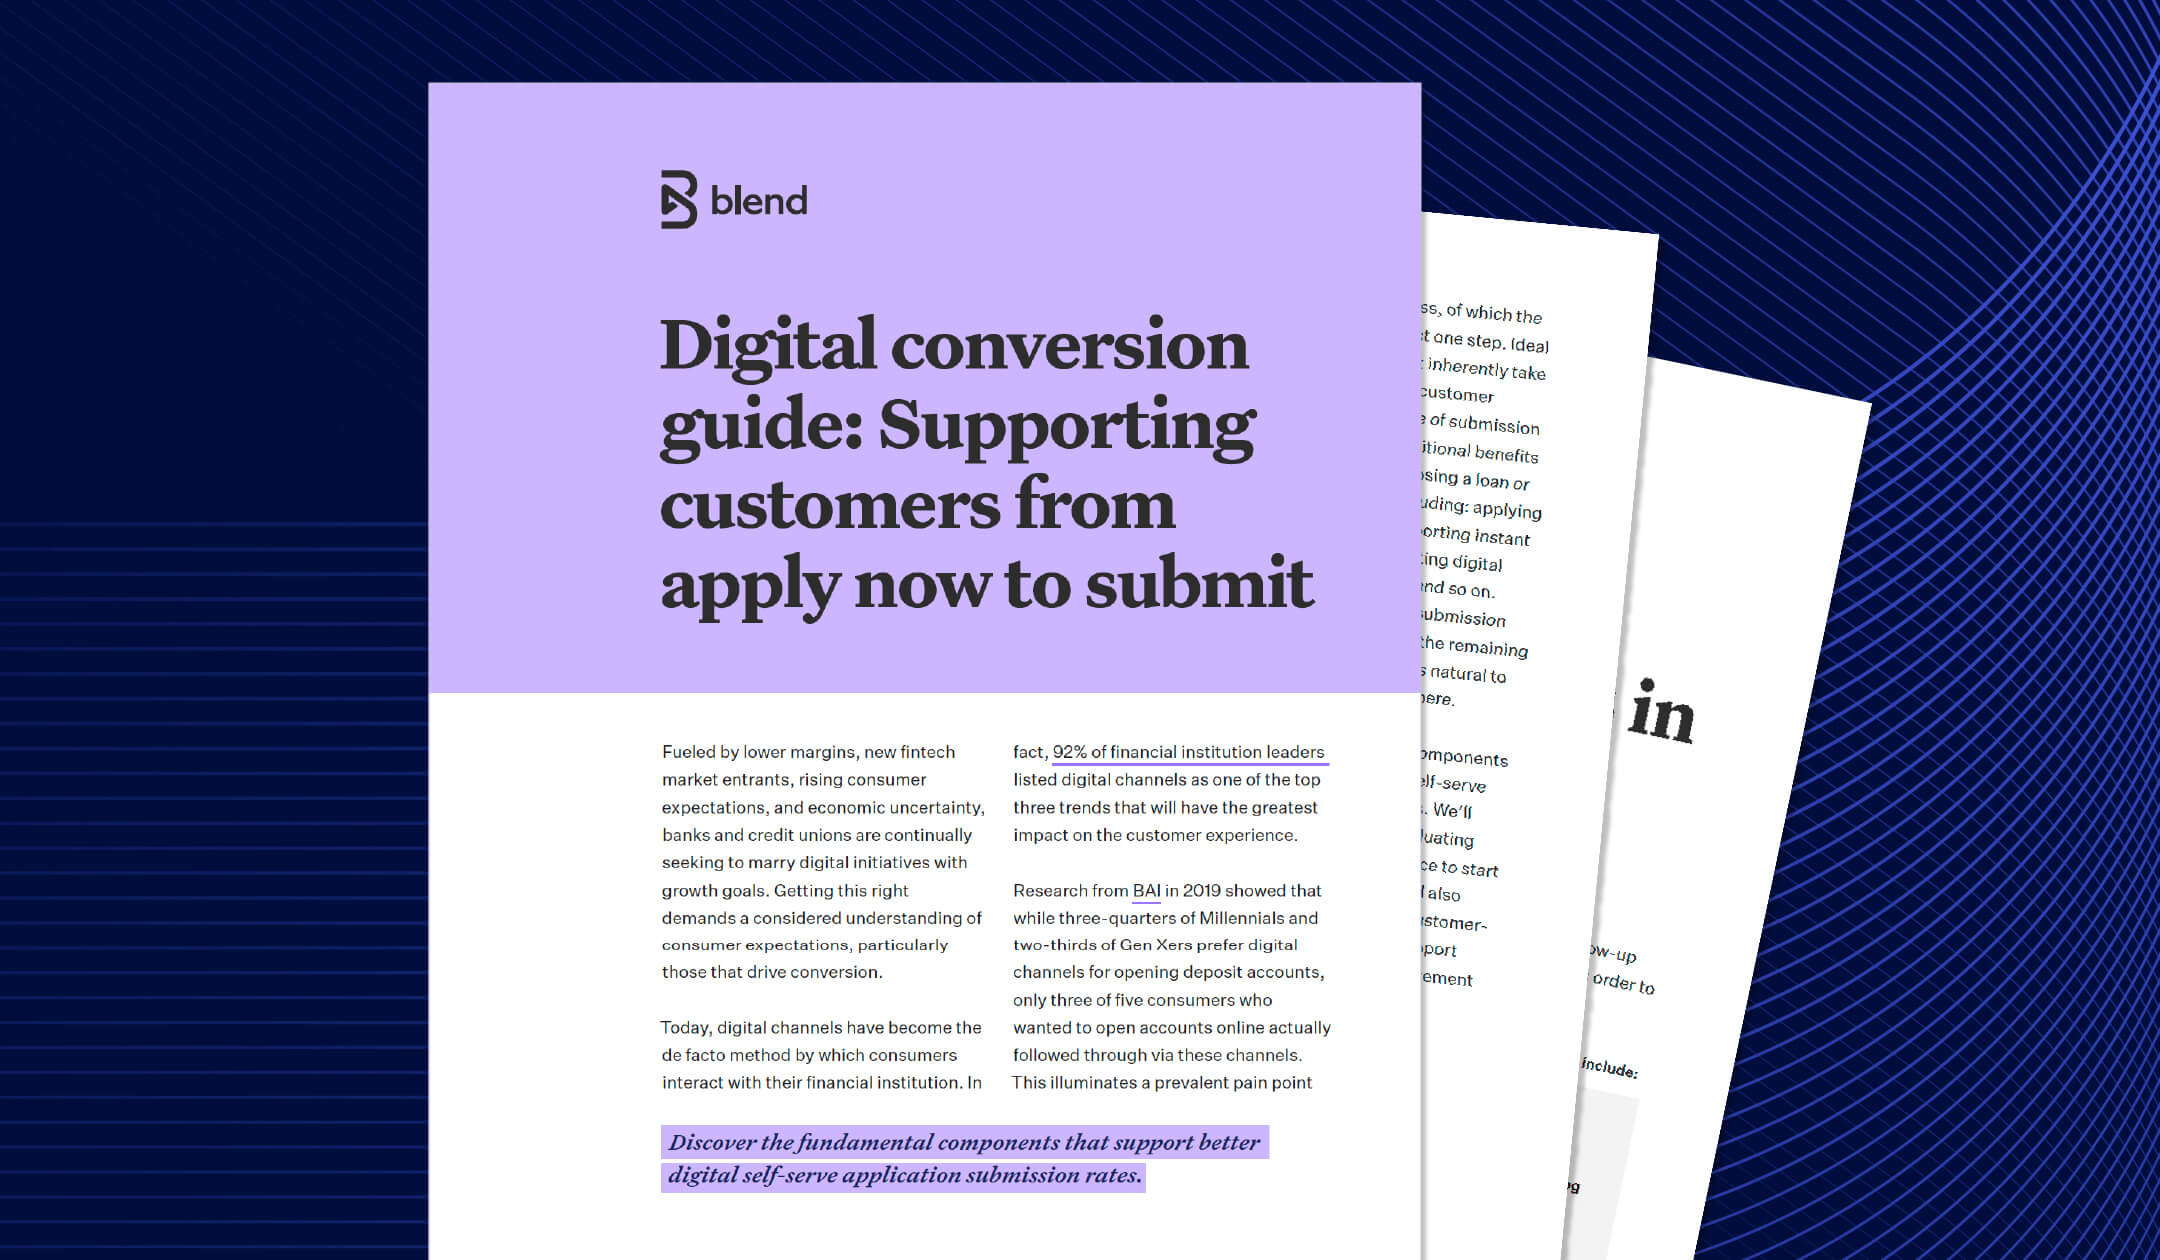 Preview of the digital conversion guide